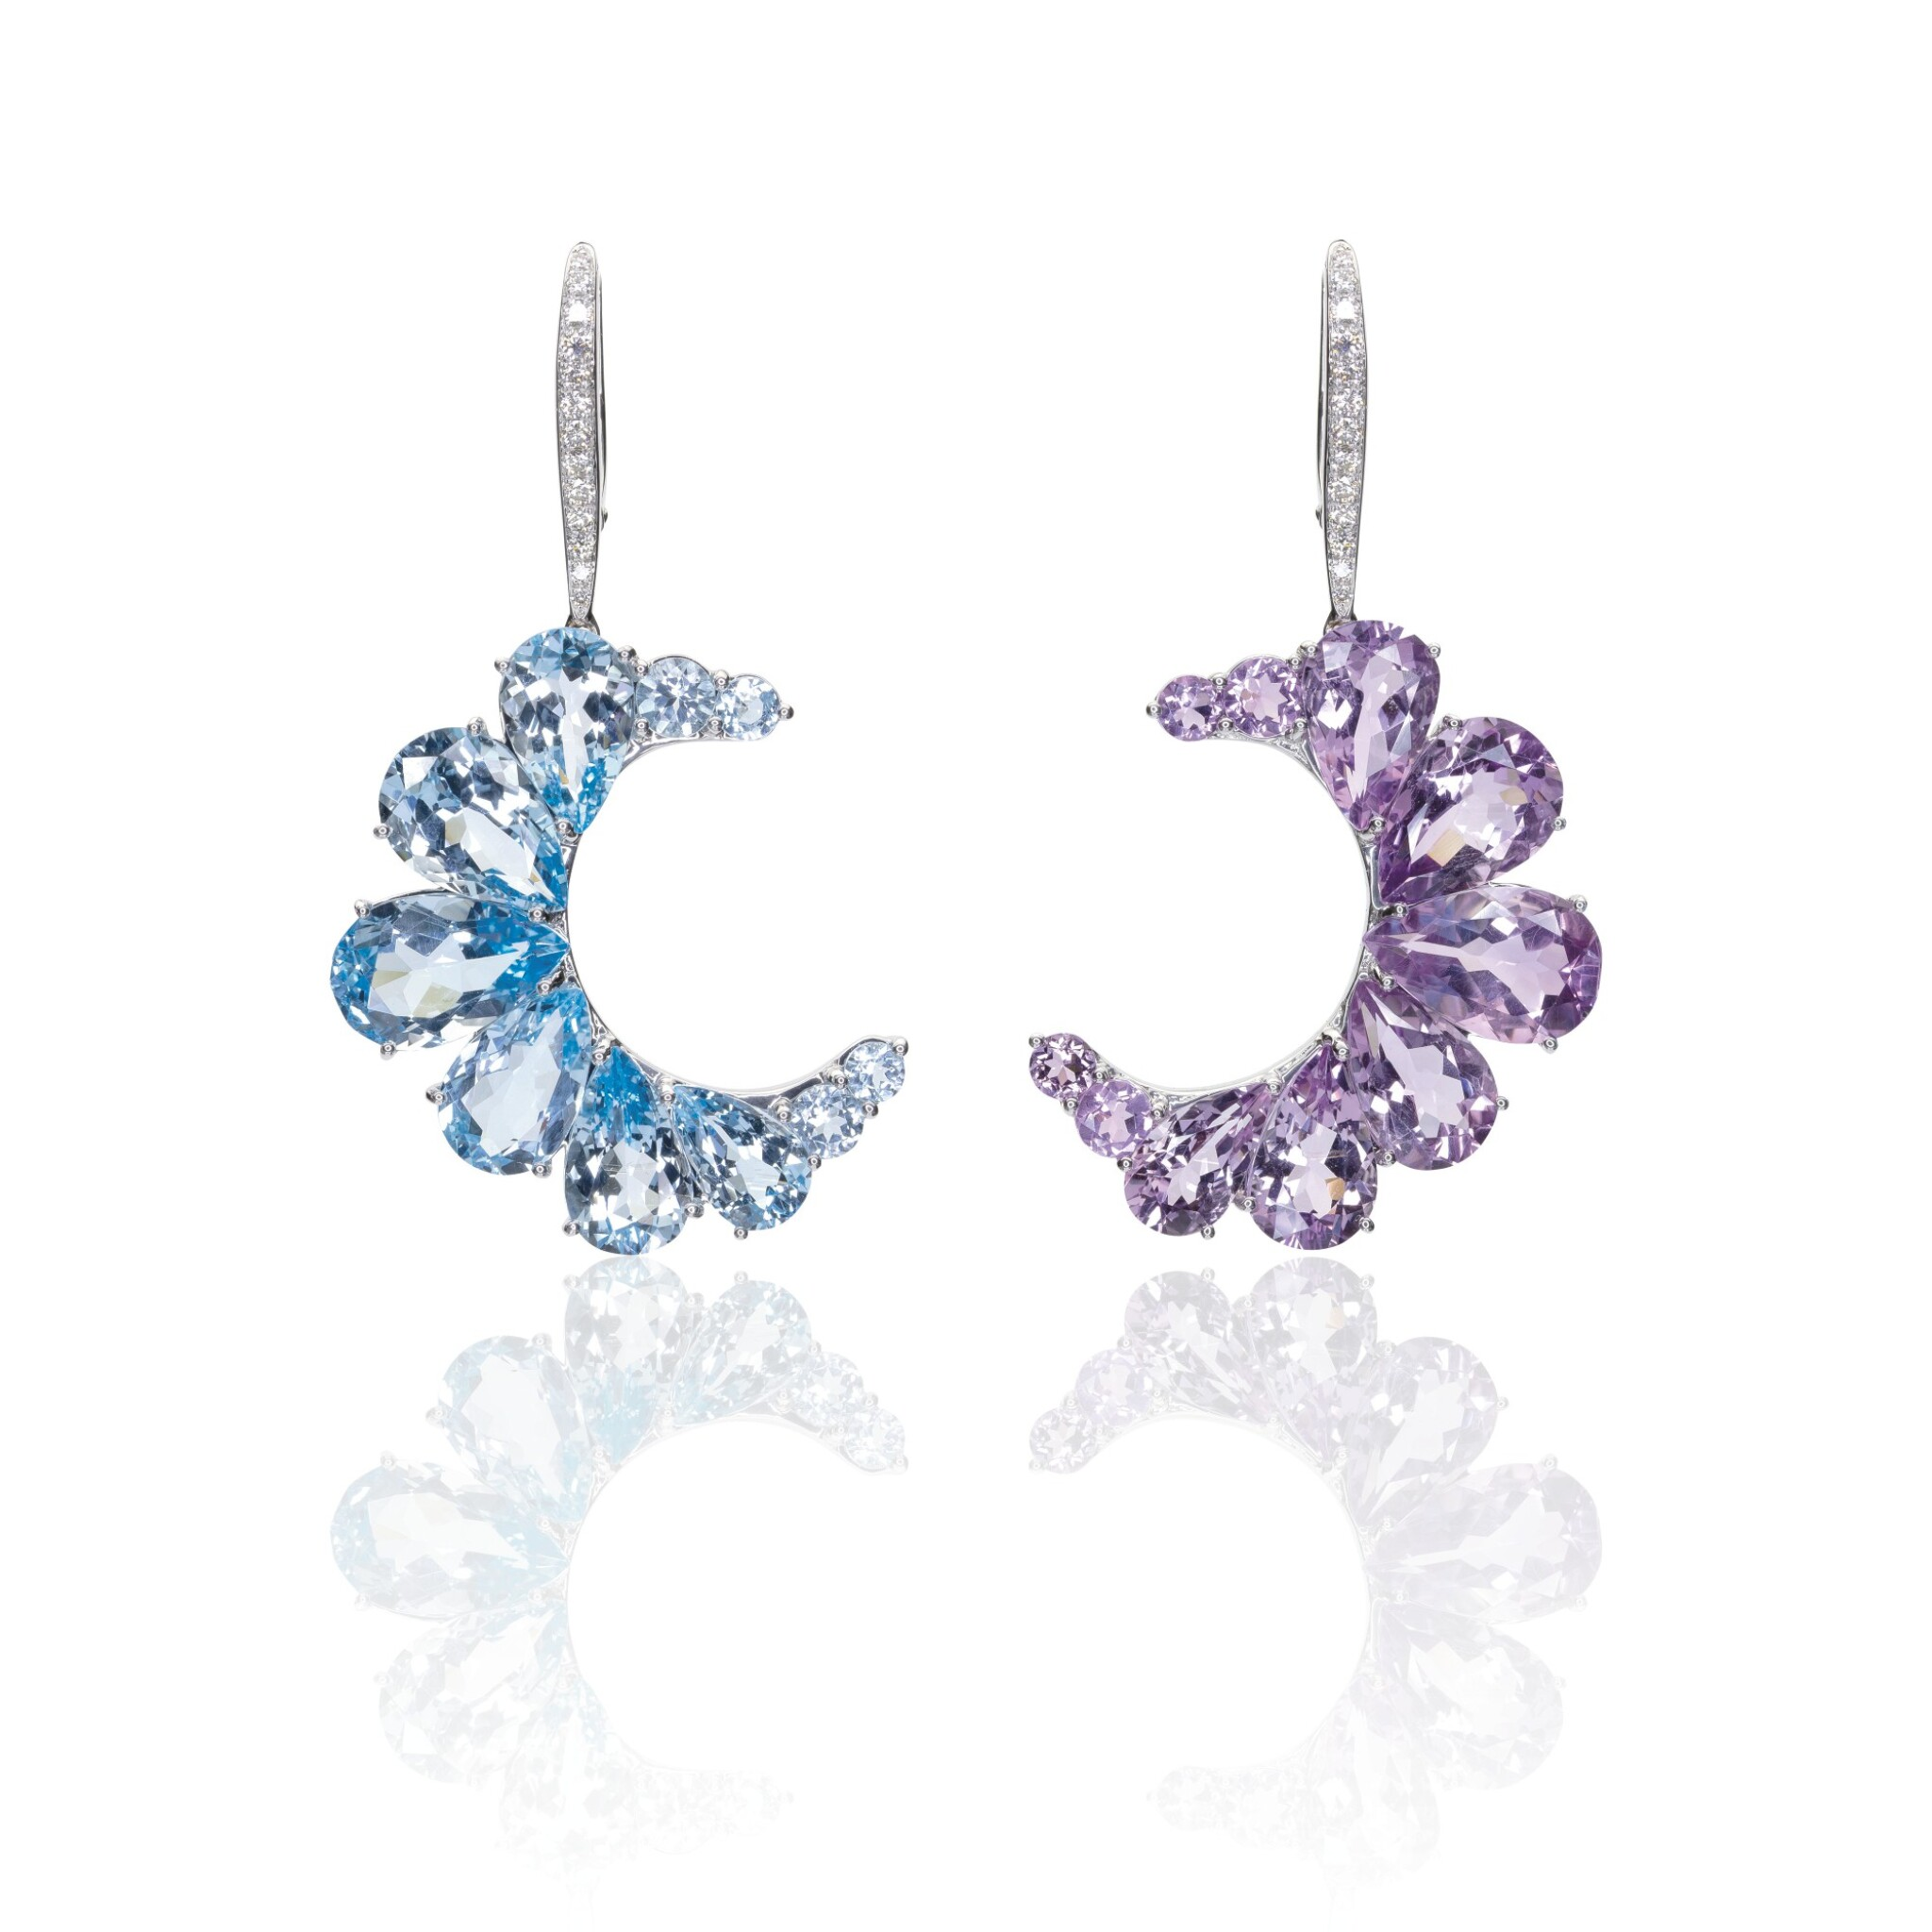 View 1 of Lot 14. PAIR OF AMETHYST, BLUE TOPAZ AND DIAMOND EARRINGS, MICHELE DELLA VALLE.